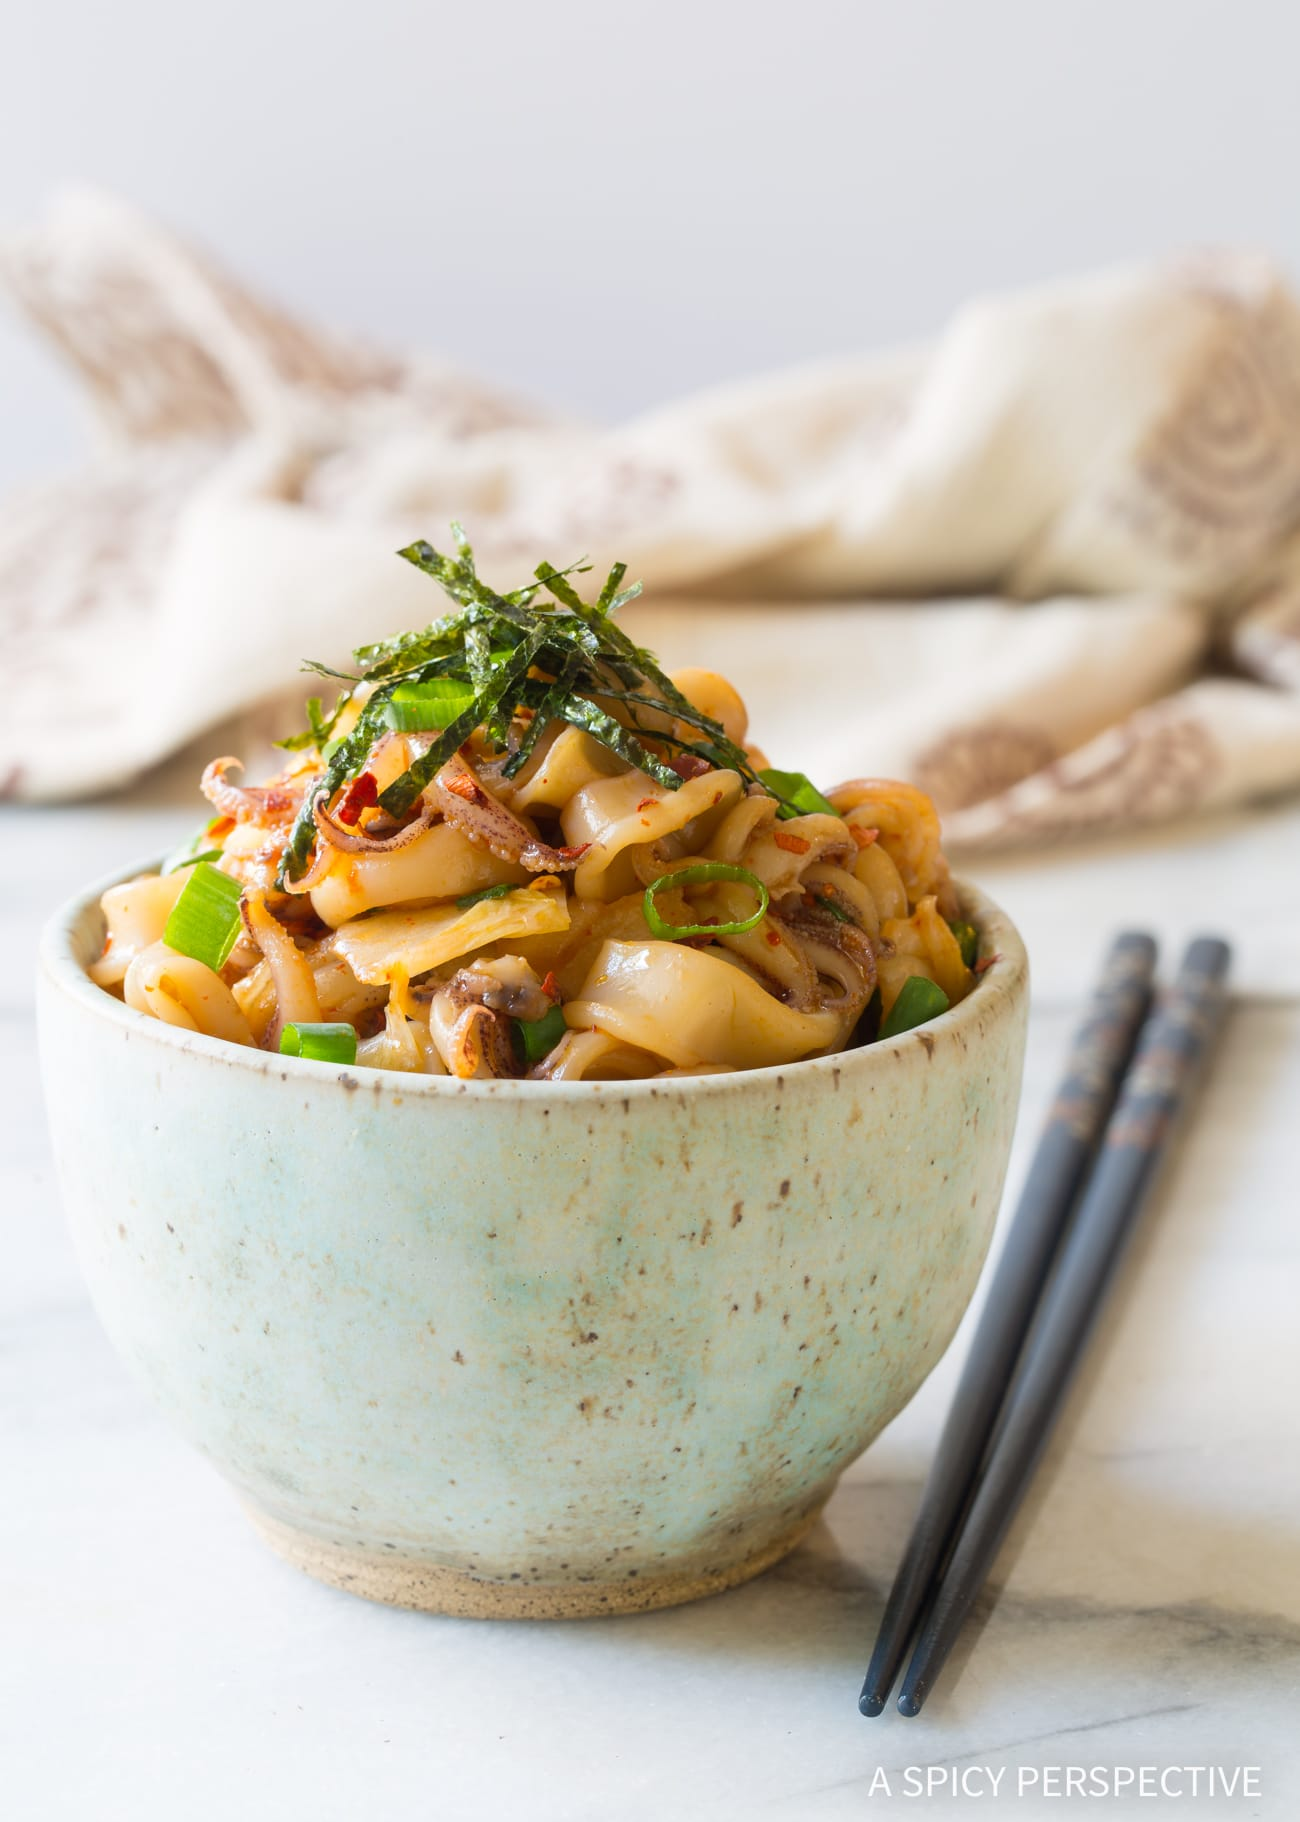 Love this Hawaiian Tako Poke Recipe (Octopus or Squid!)